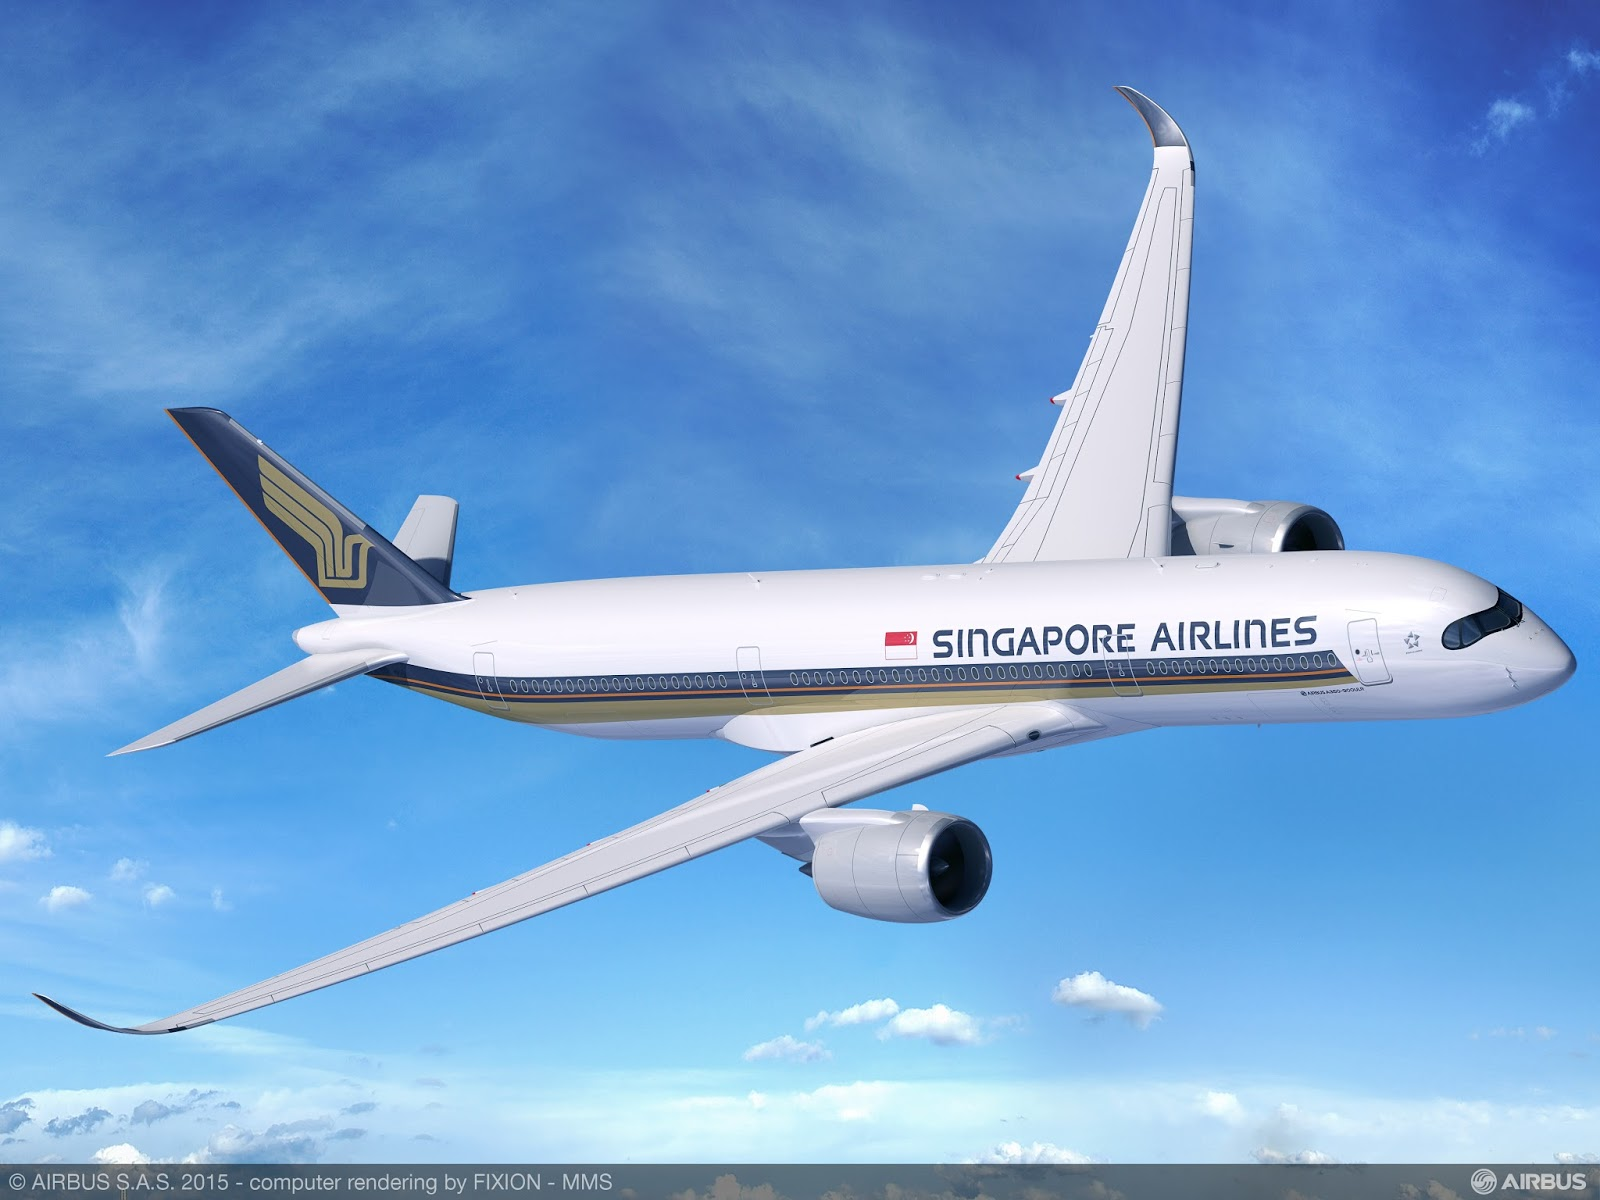 MORE THAN FLY Group | Airbus launches new Ultra-Long Range version of the A350-900